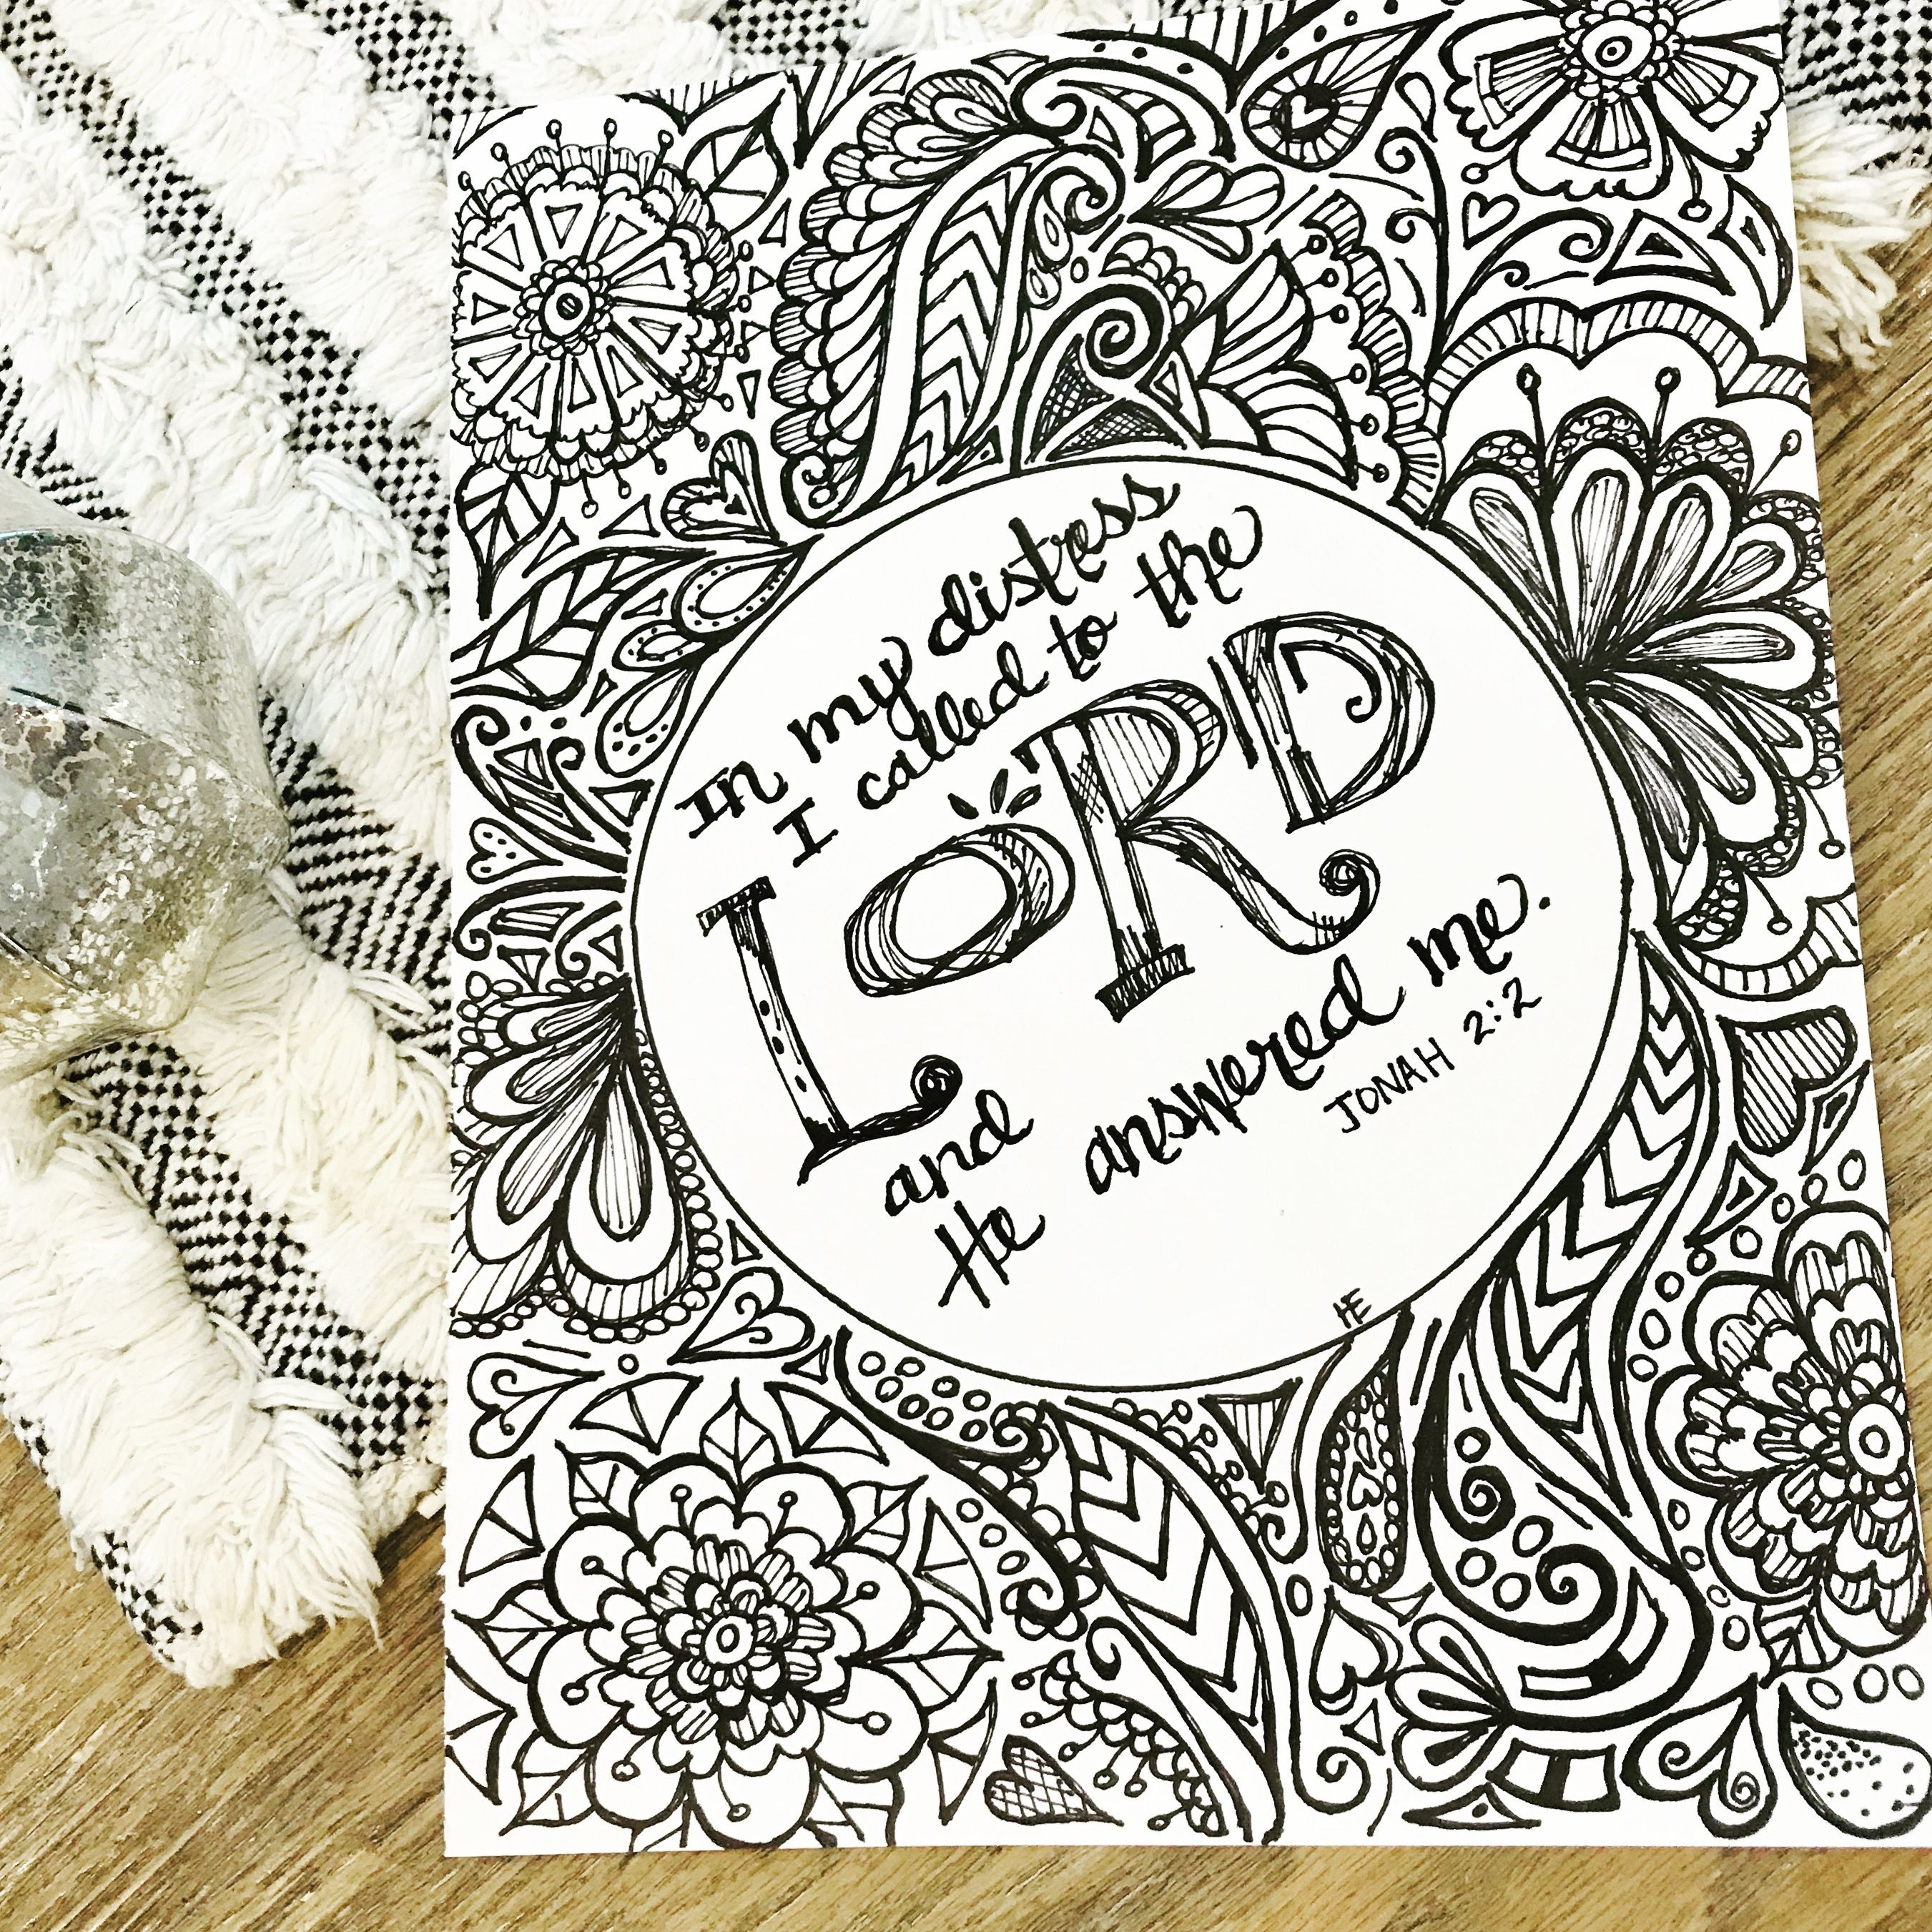 Free Coloring Page Downloads Scripture Coloring Coloring Pages Free Coloring Pages